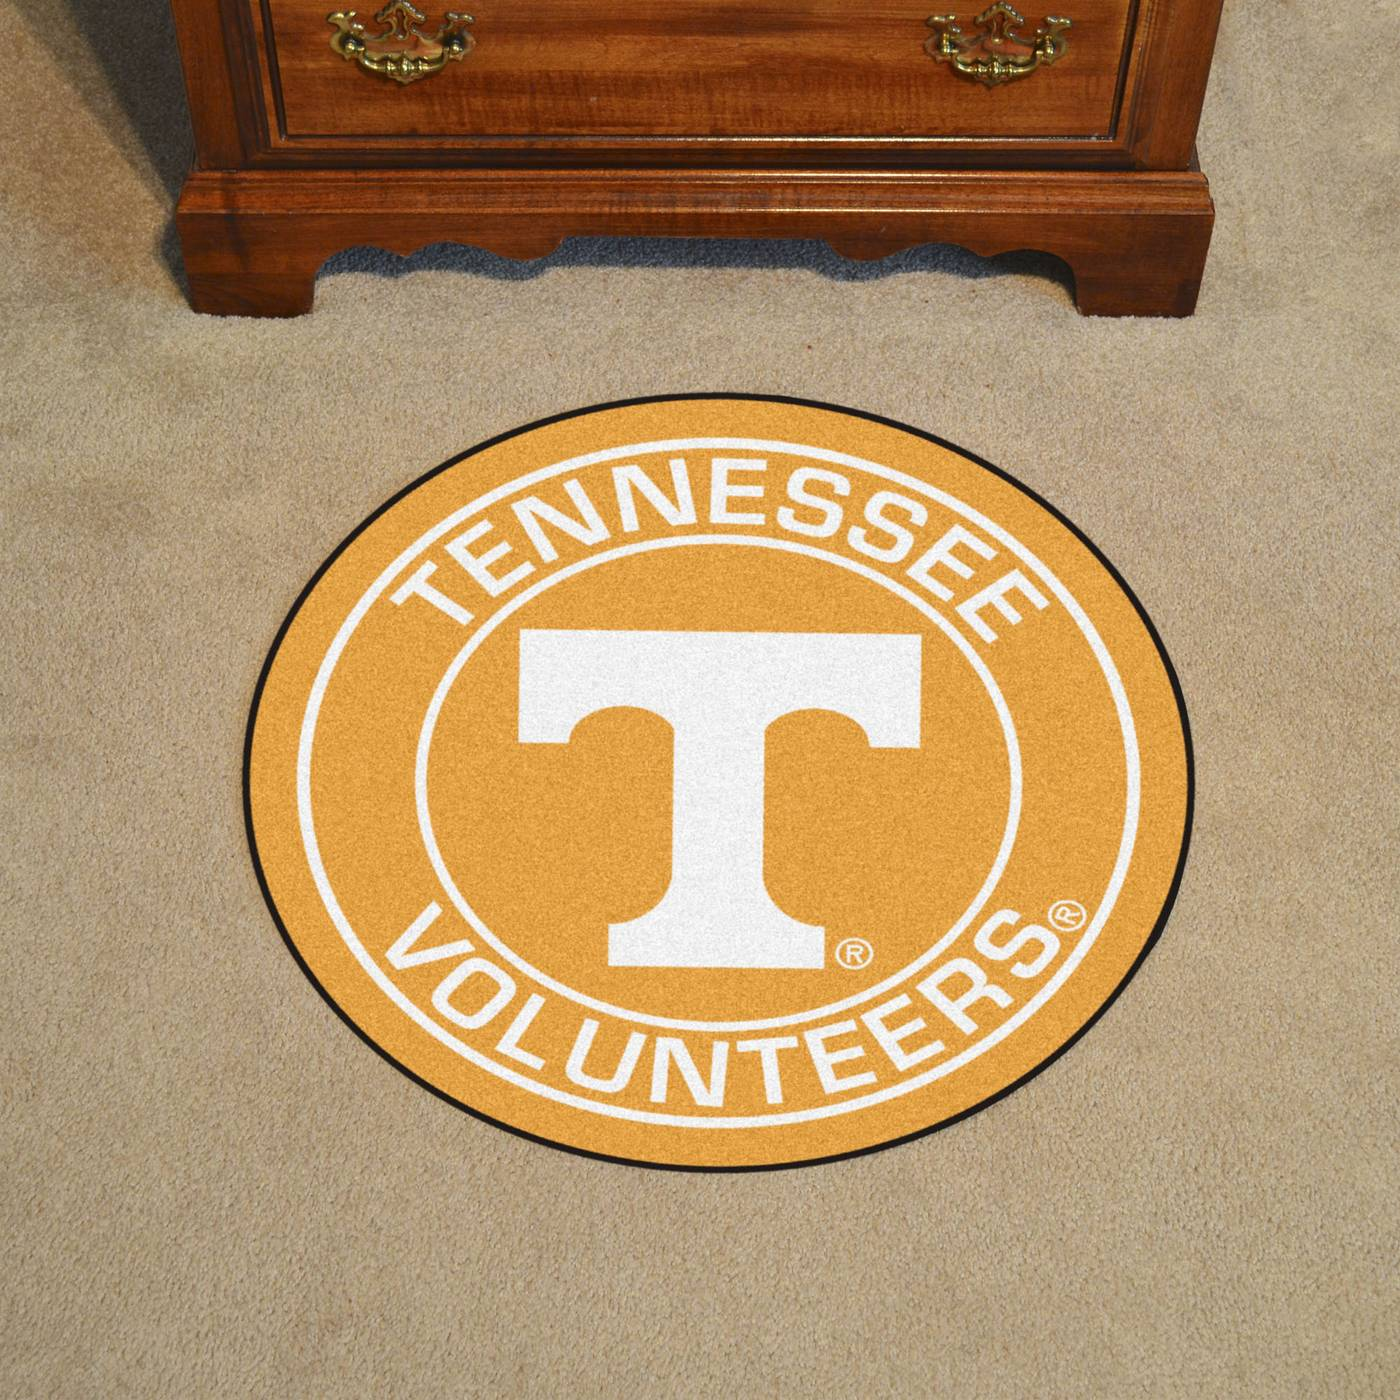 Boston Bruins Home Decor Tennessee Volunteers Rounded Mat